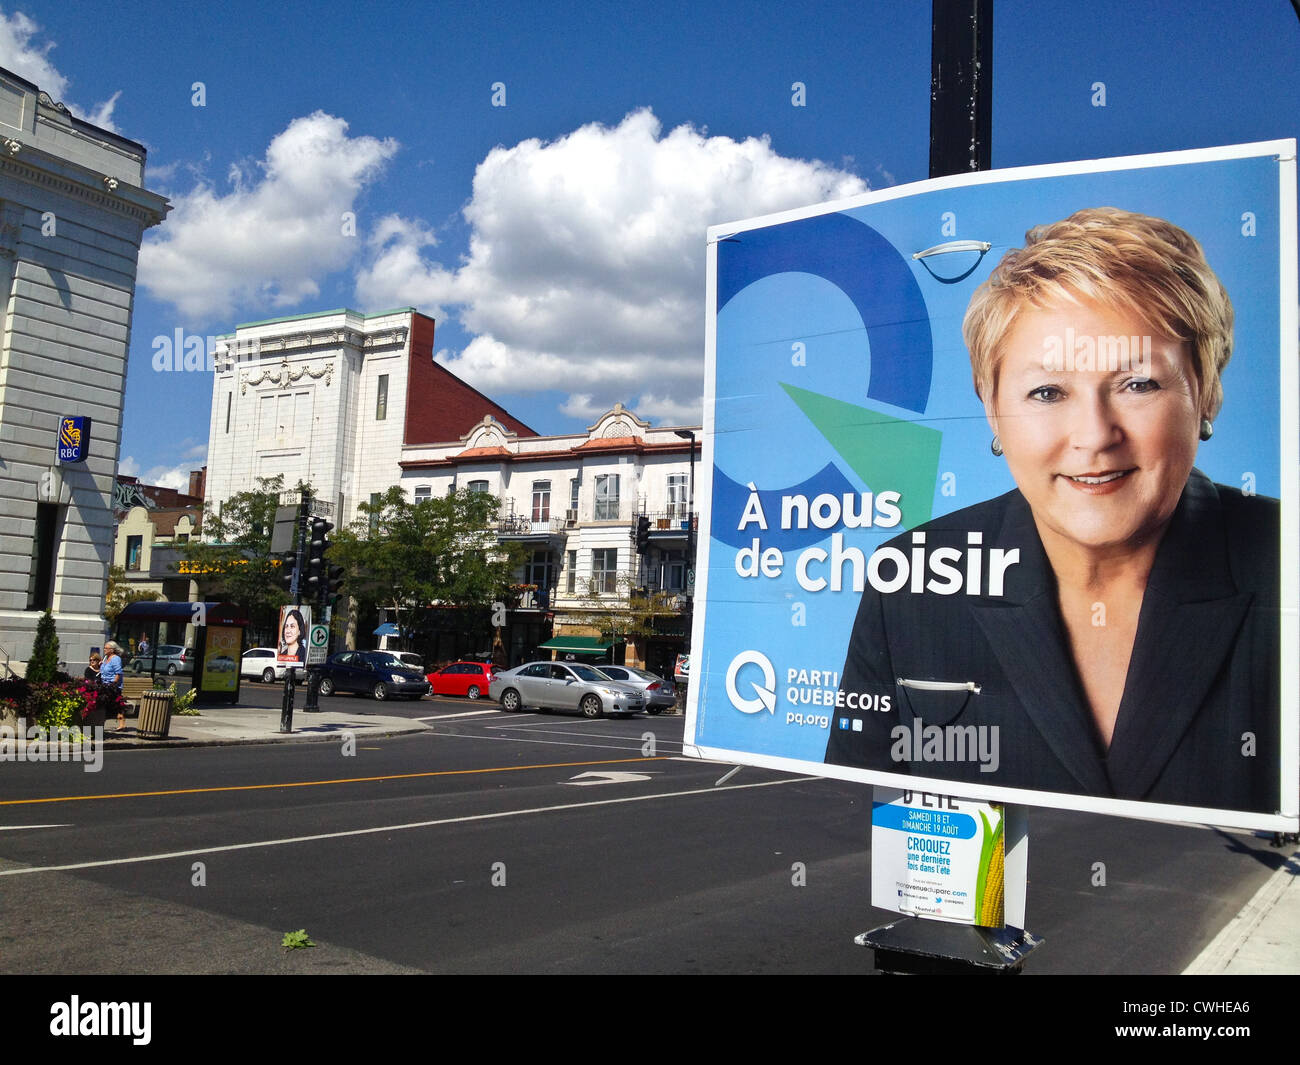 The party Quebecois has big chances to win on the 4th September 2012-They support the separation of Quebec from Stock Photo